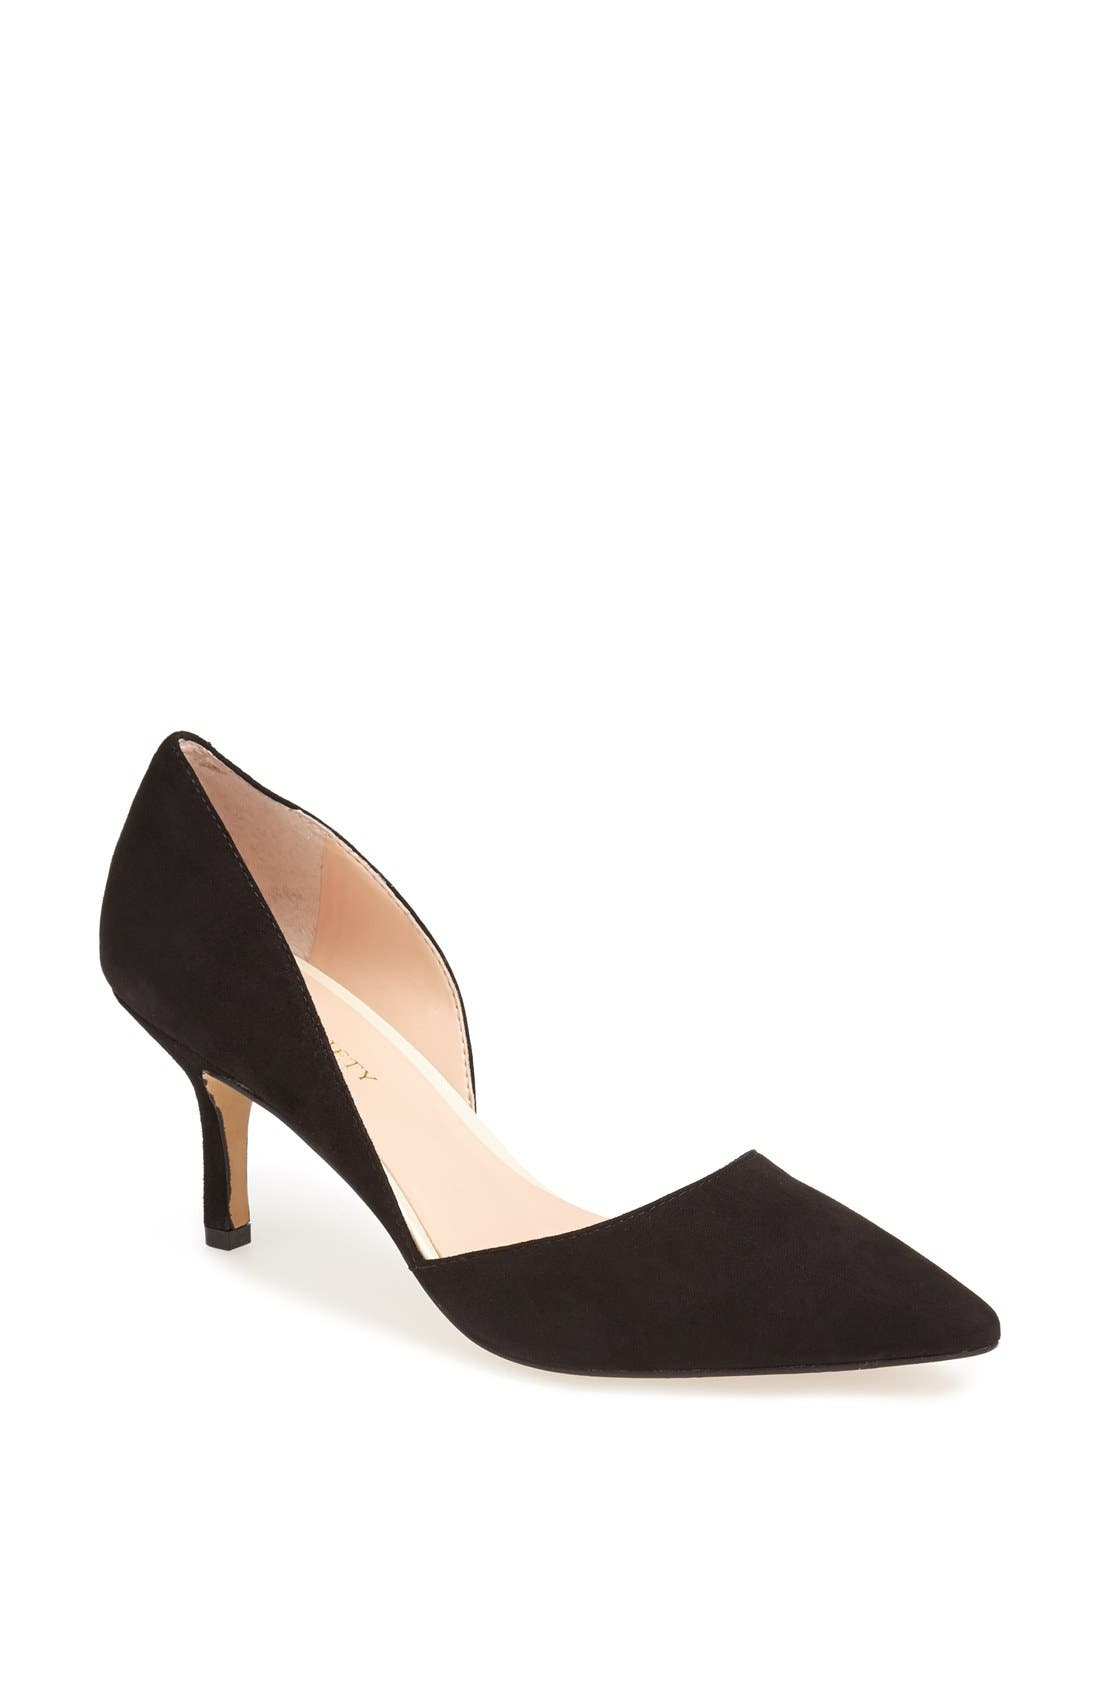 'Jenn' Pointy Toe Pump,                         Main,                         color, 001